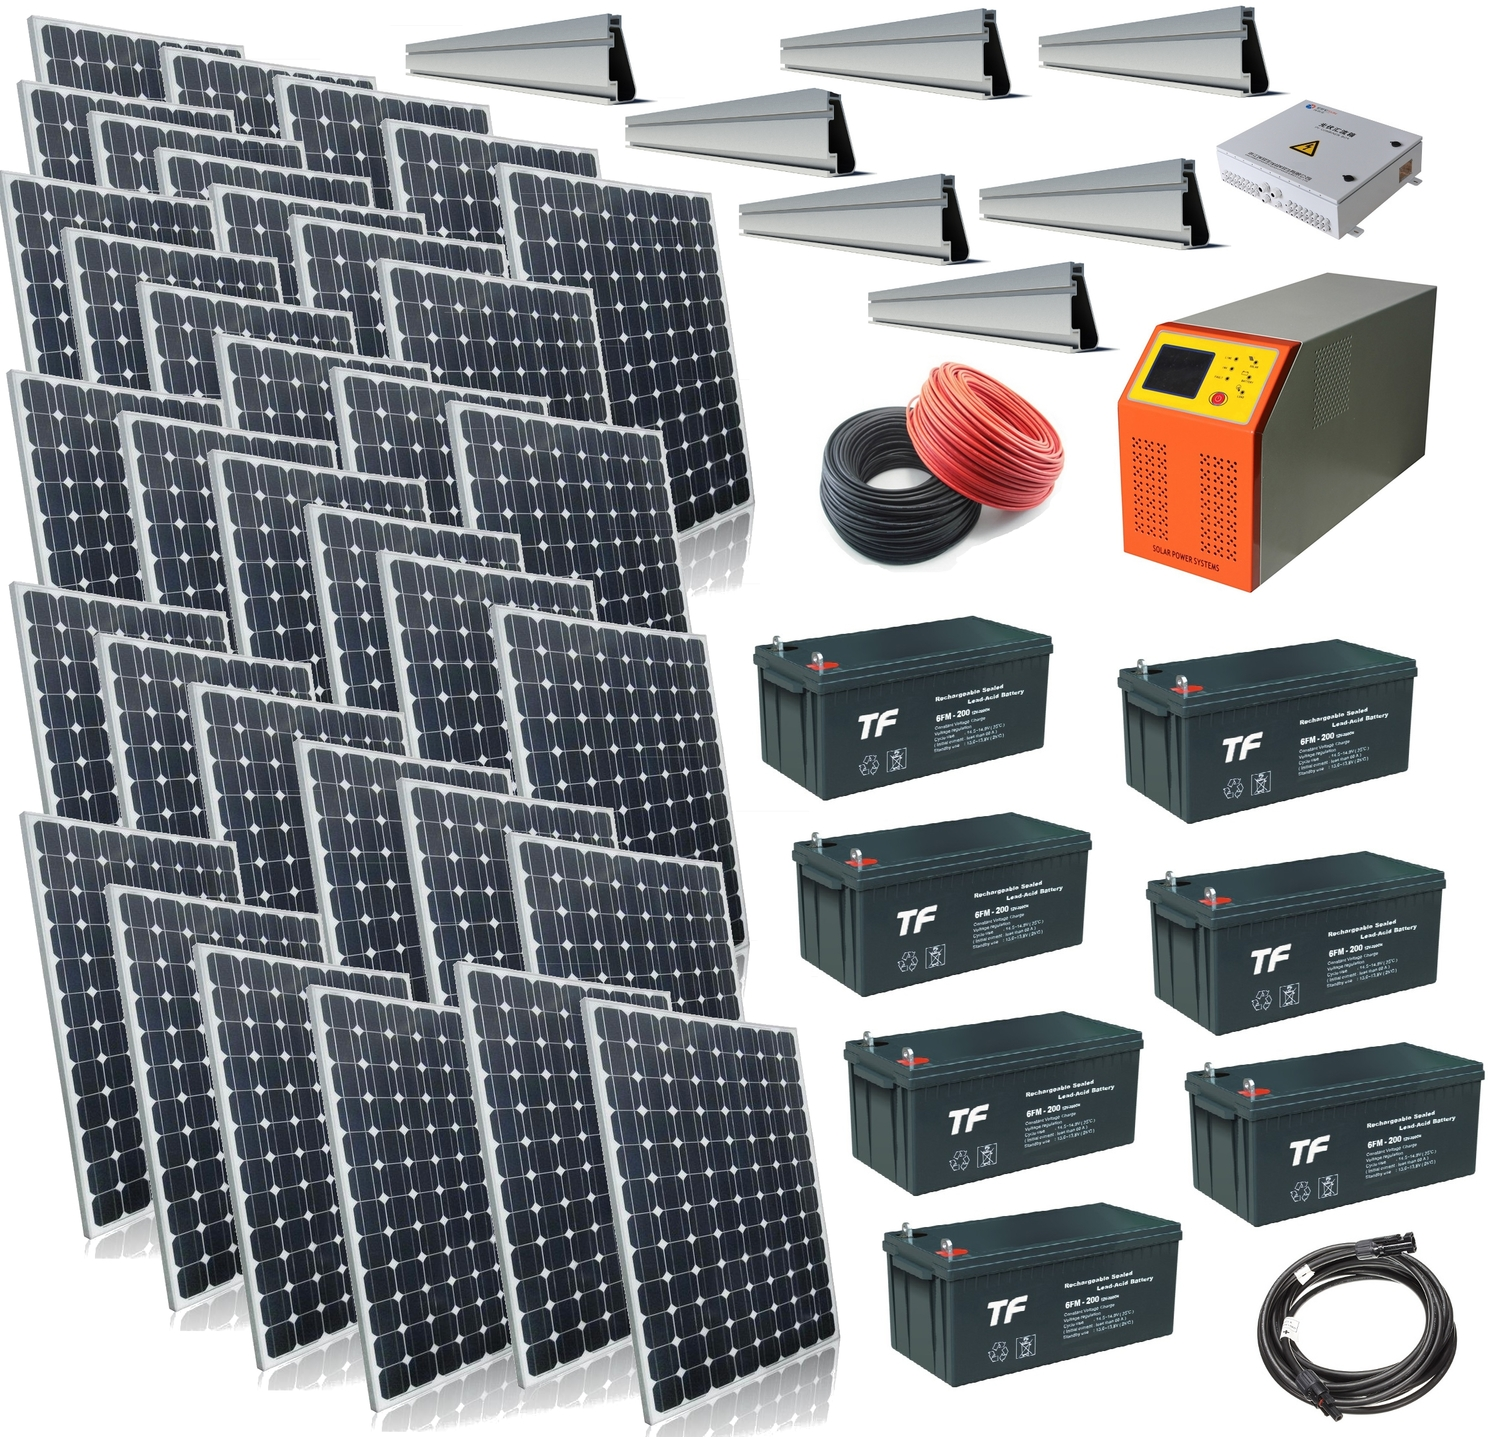 Windsoleil 832kw Solar Power Off Grid System And With Panel Bypass Schematic